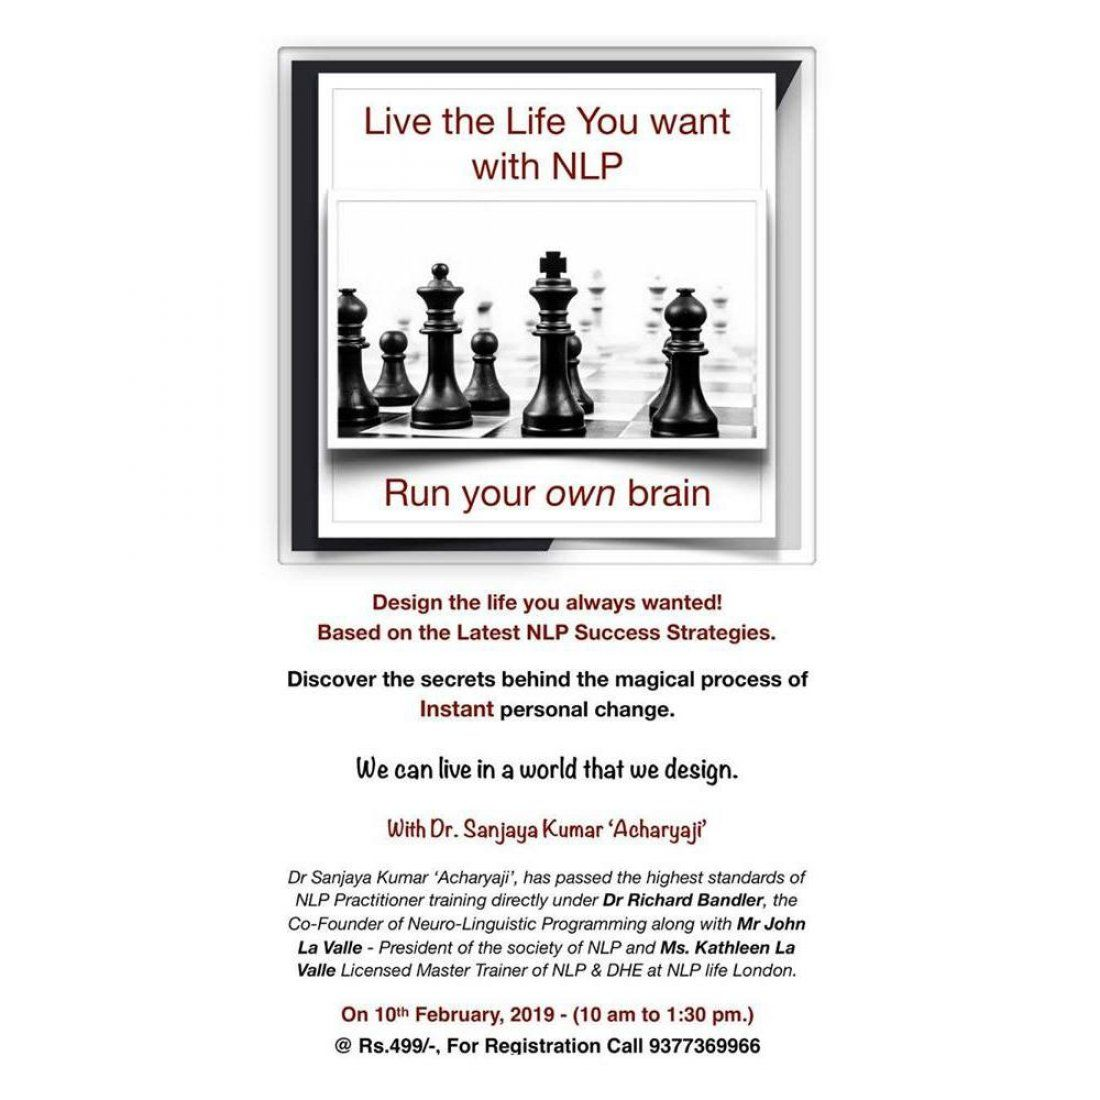 Live the Life You want with NLP